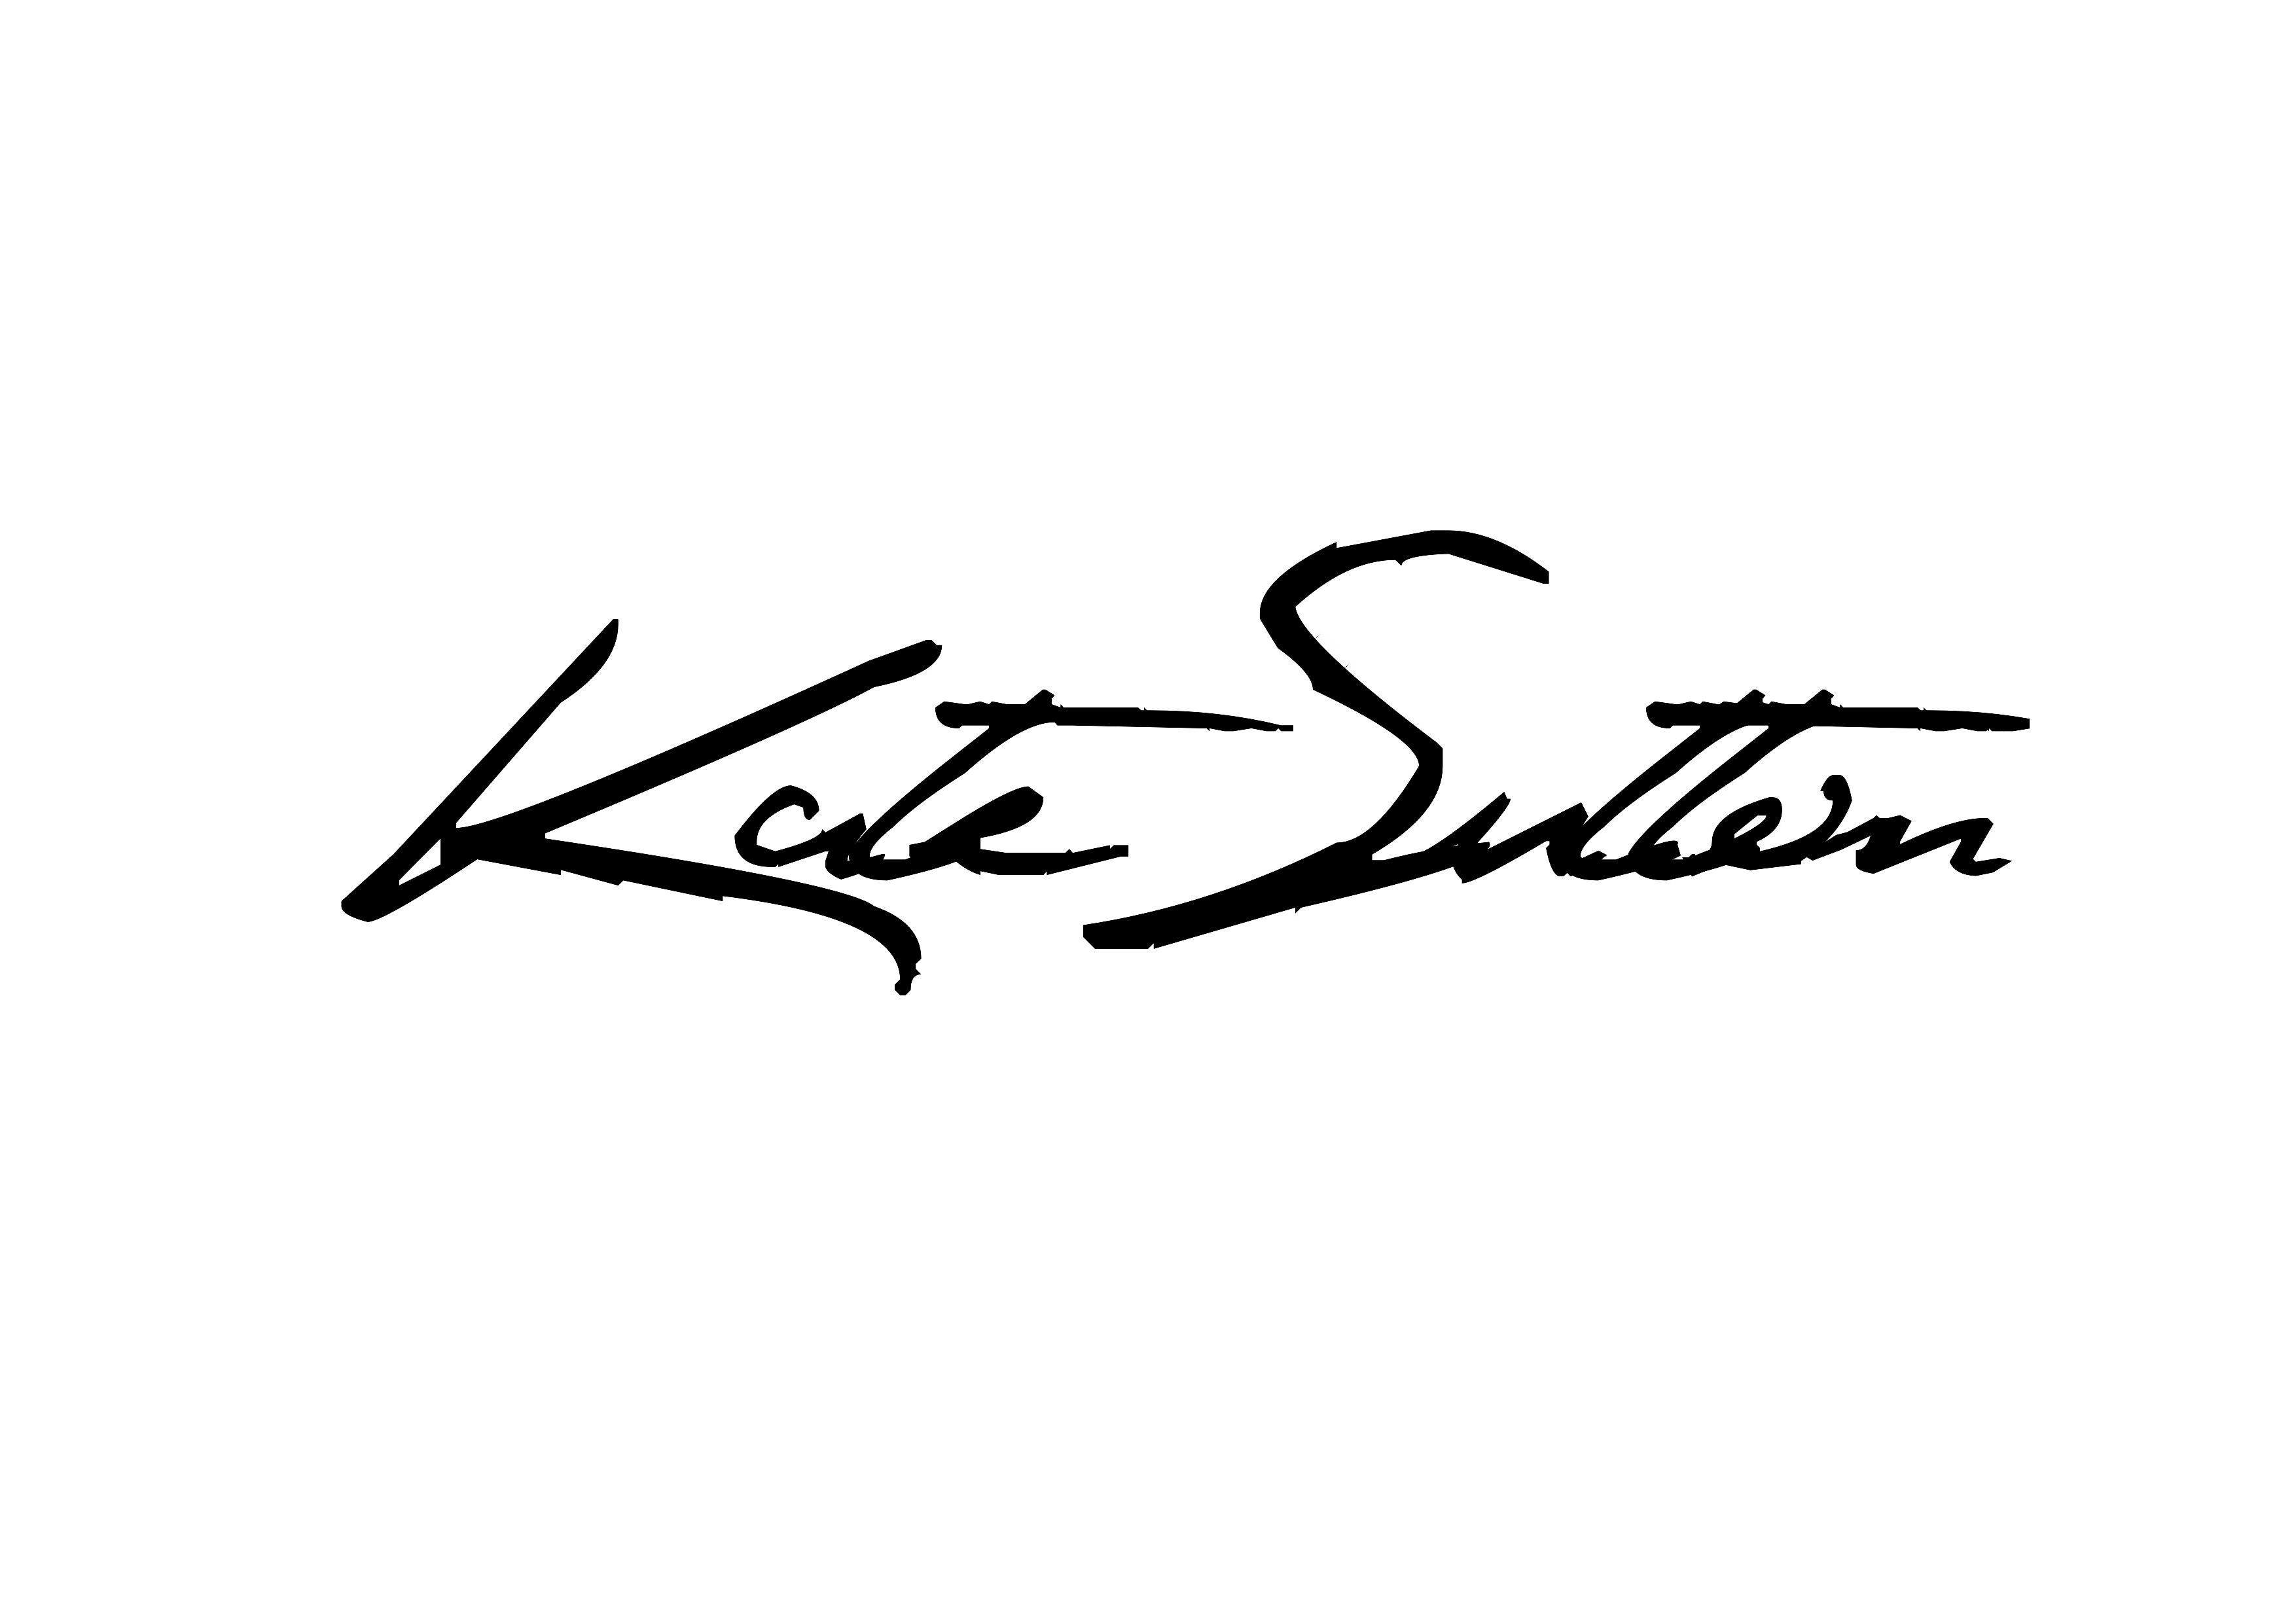 Kate sutton's Signature